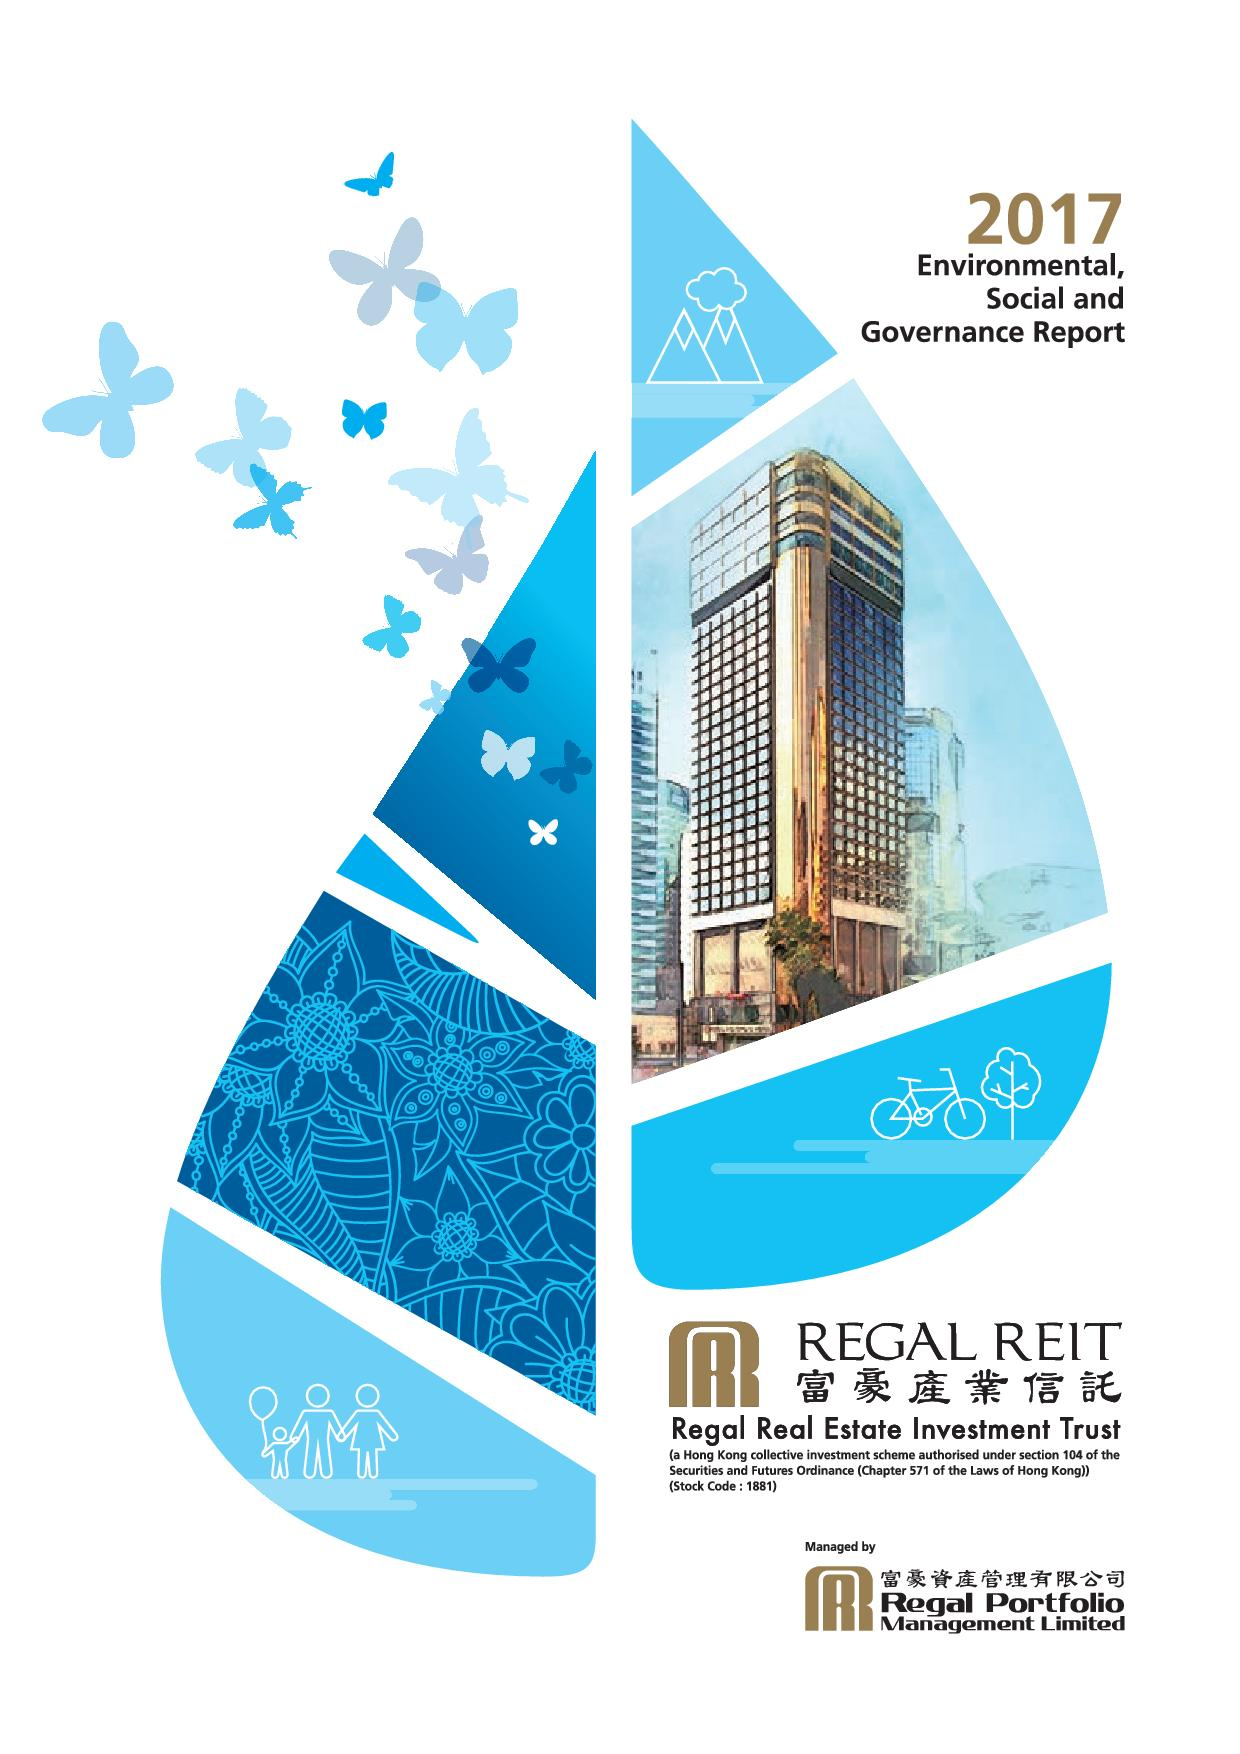 Regal Real Estate Investment Trust